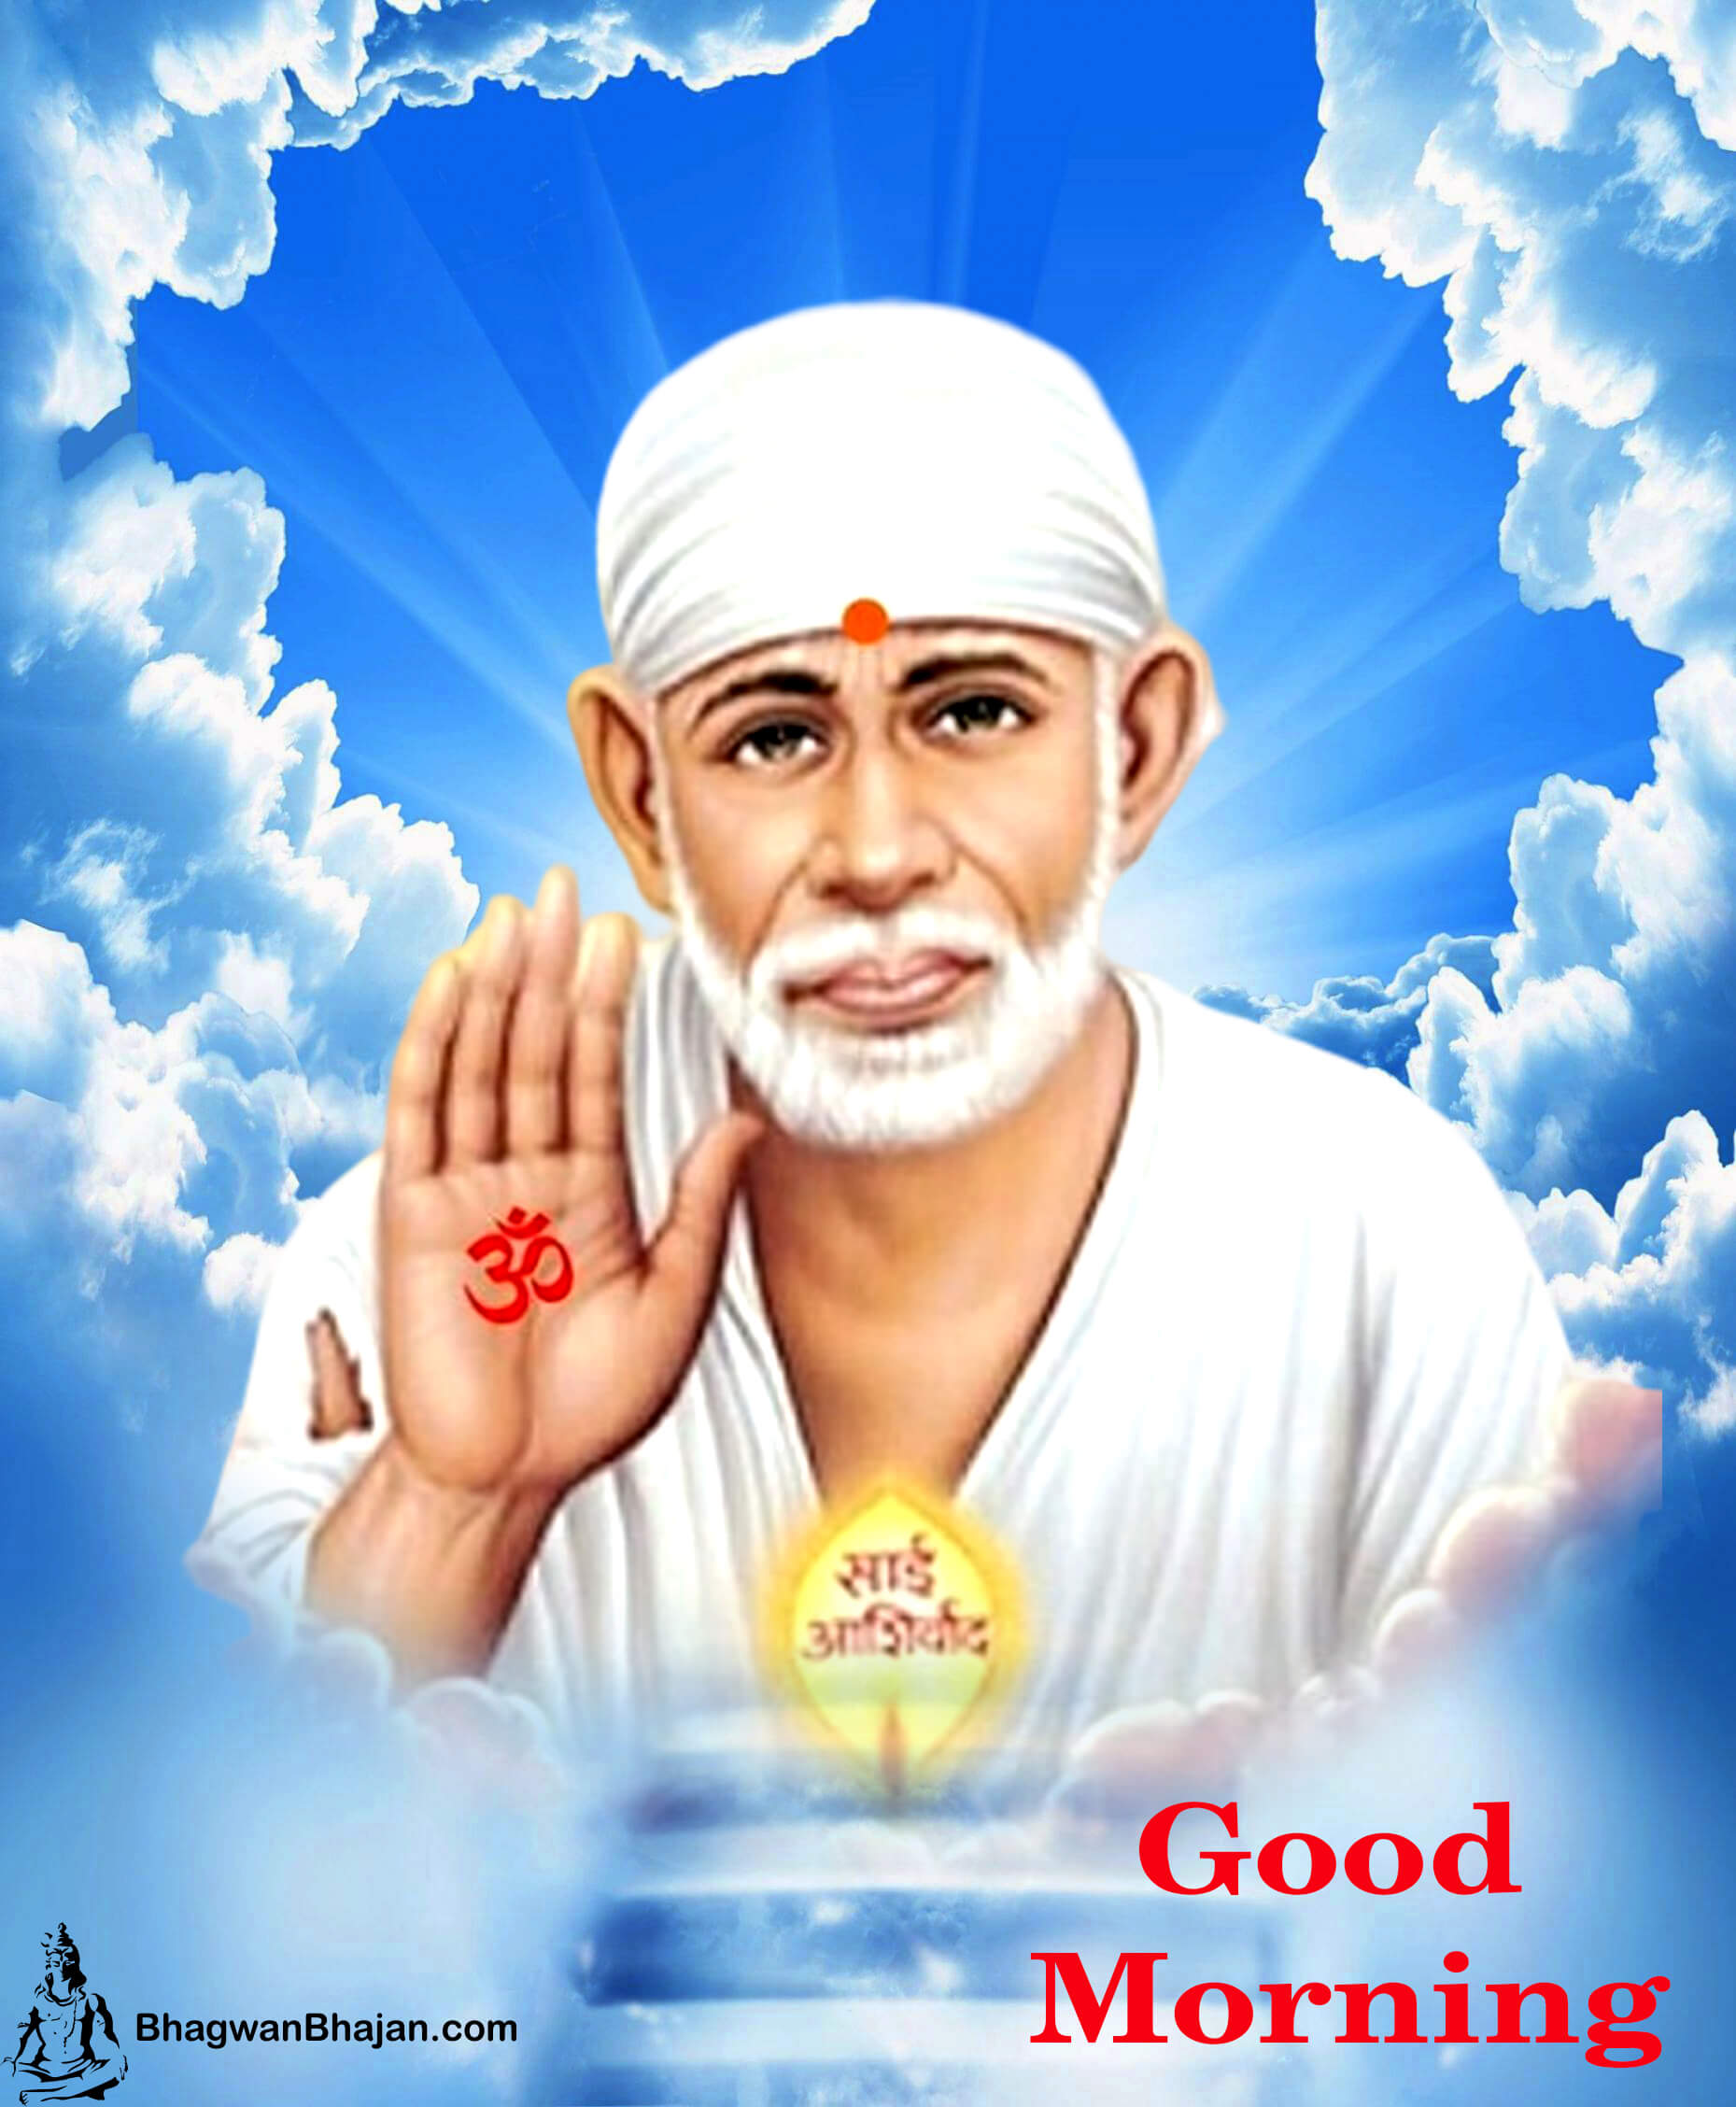 Bhagwan Sai Baba Good Morining Wishes